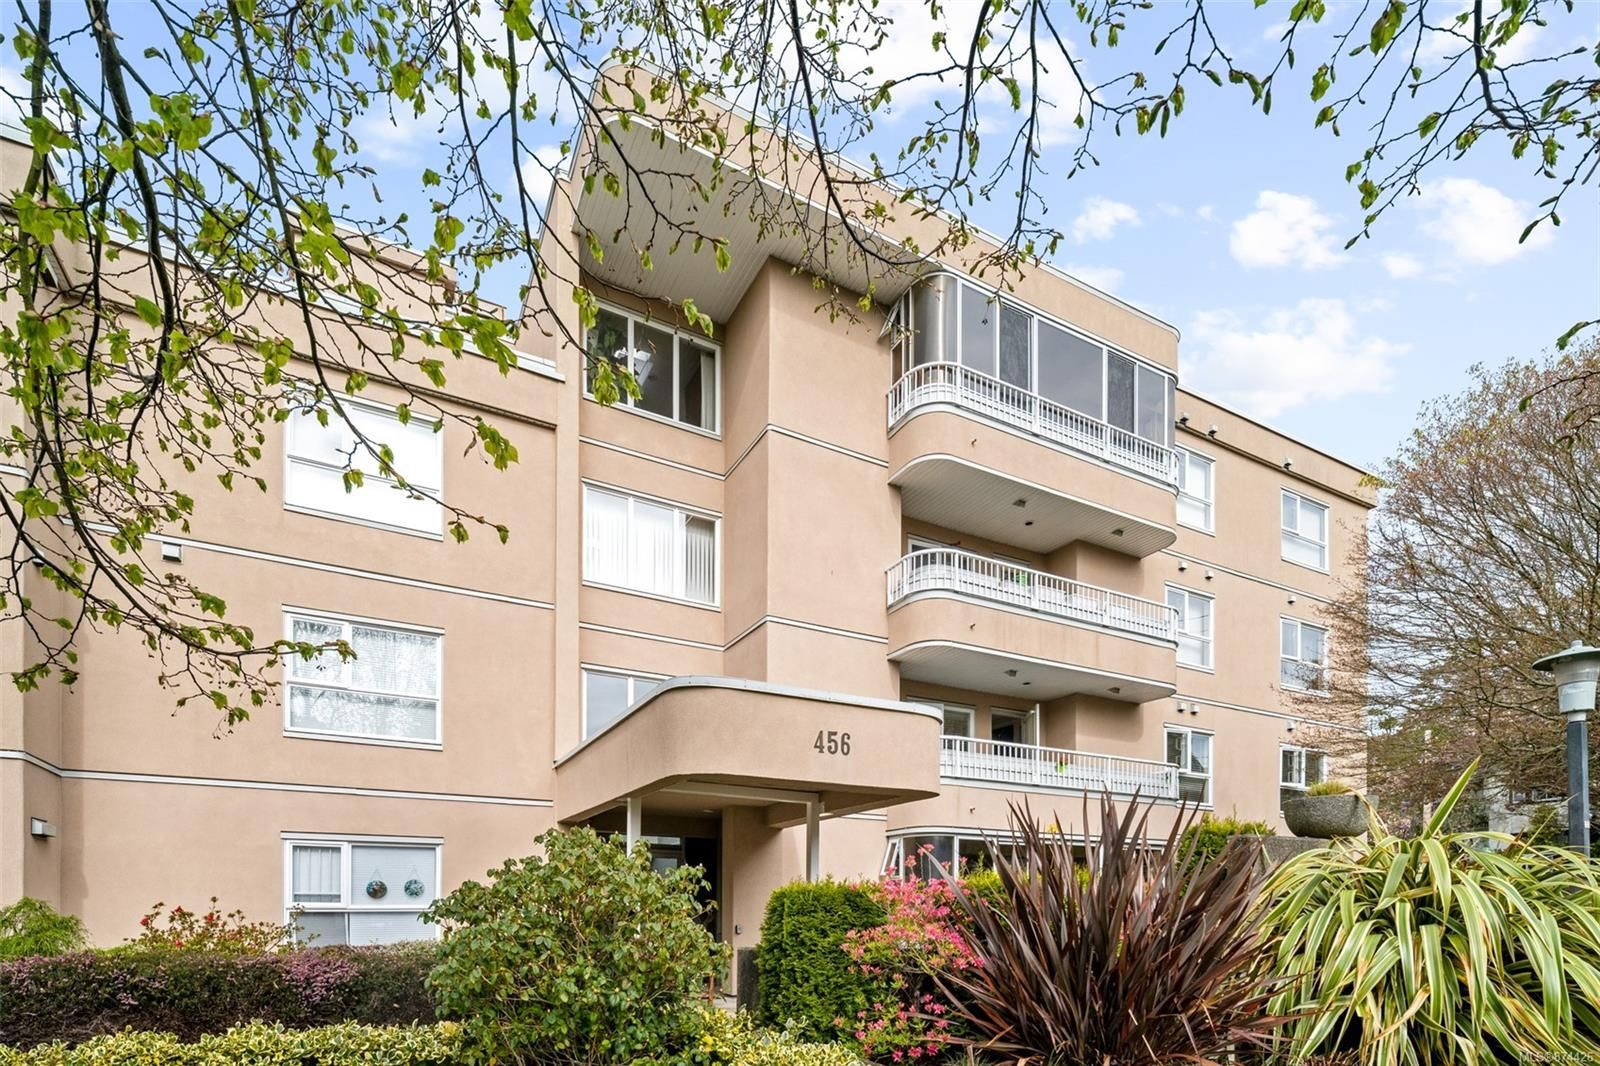 Main Photo: 205 456 Linden Ave in : Vi Fairfield West Condo for sale (Victoria)  : MLS®# 874426